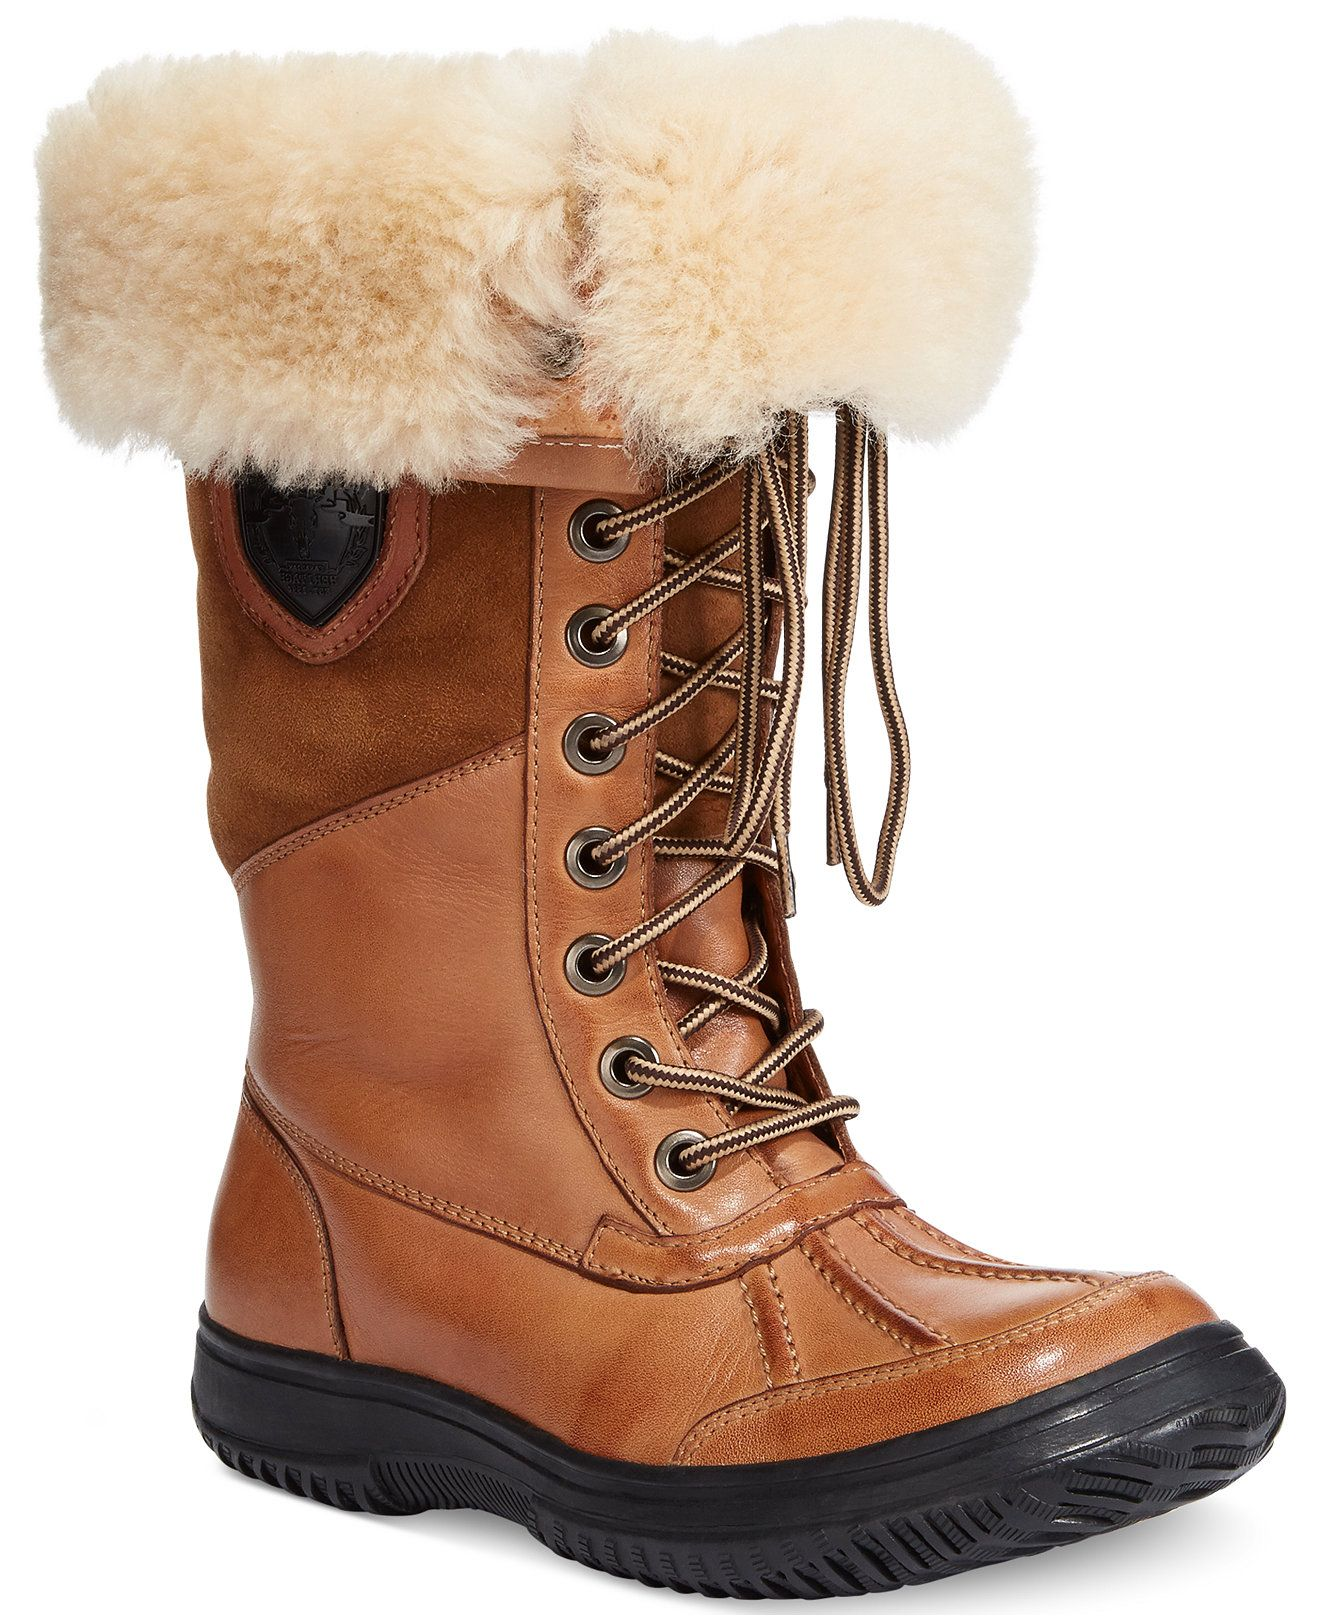 Rudsak Buena Cold Weather Boots - Winter & Rain Boots - Shoes ...